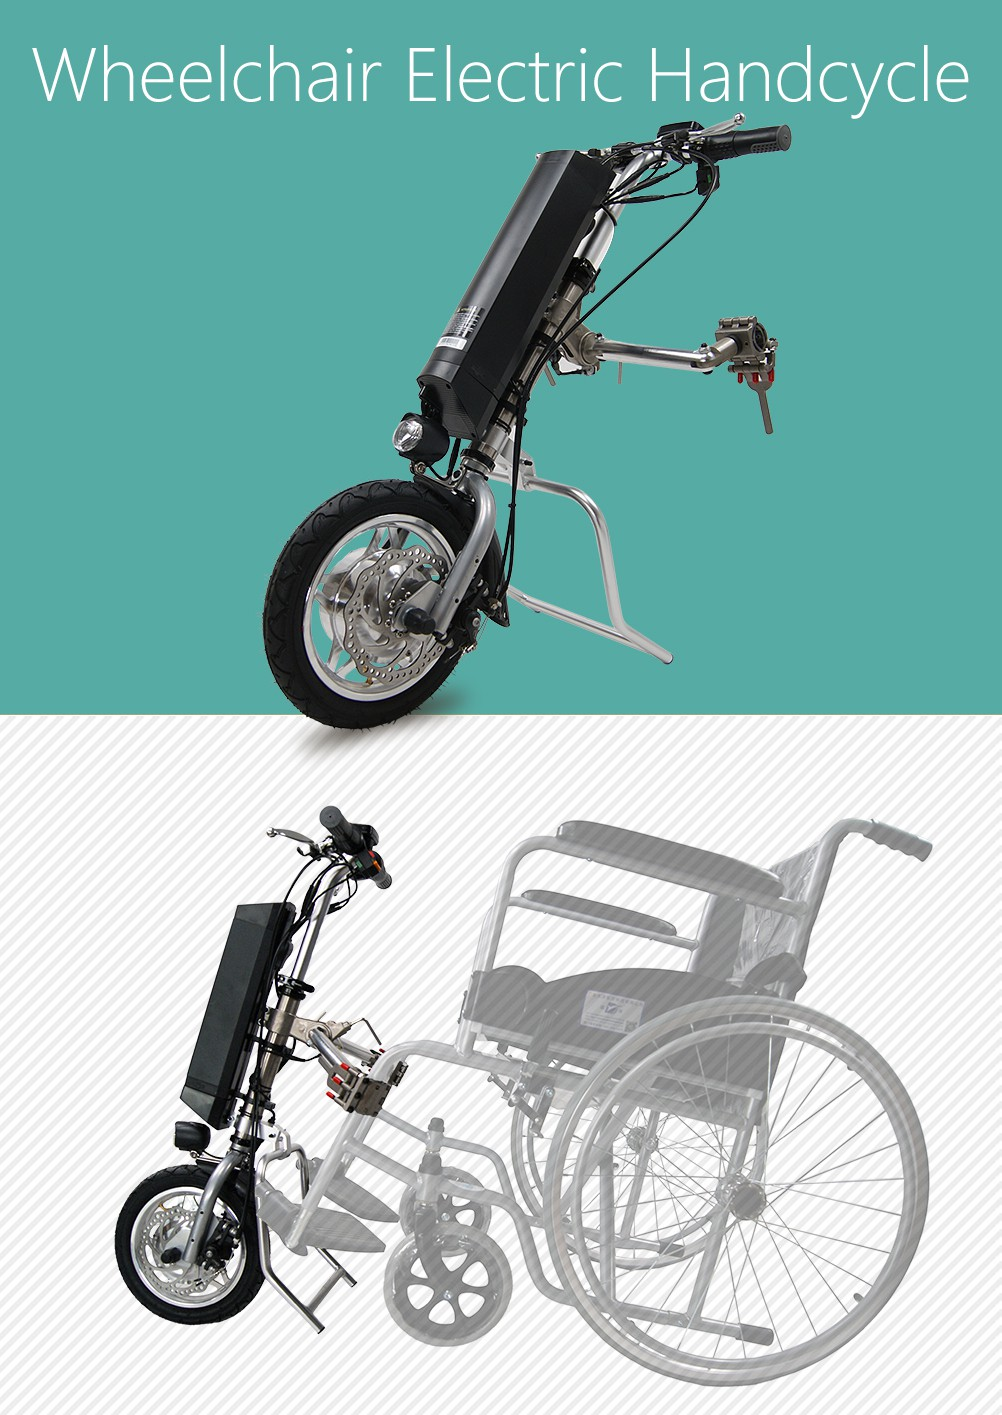 2017 New electric mobility scooter for wheelchair 250w with thunder type battery